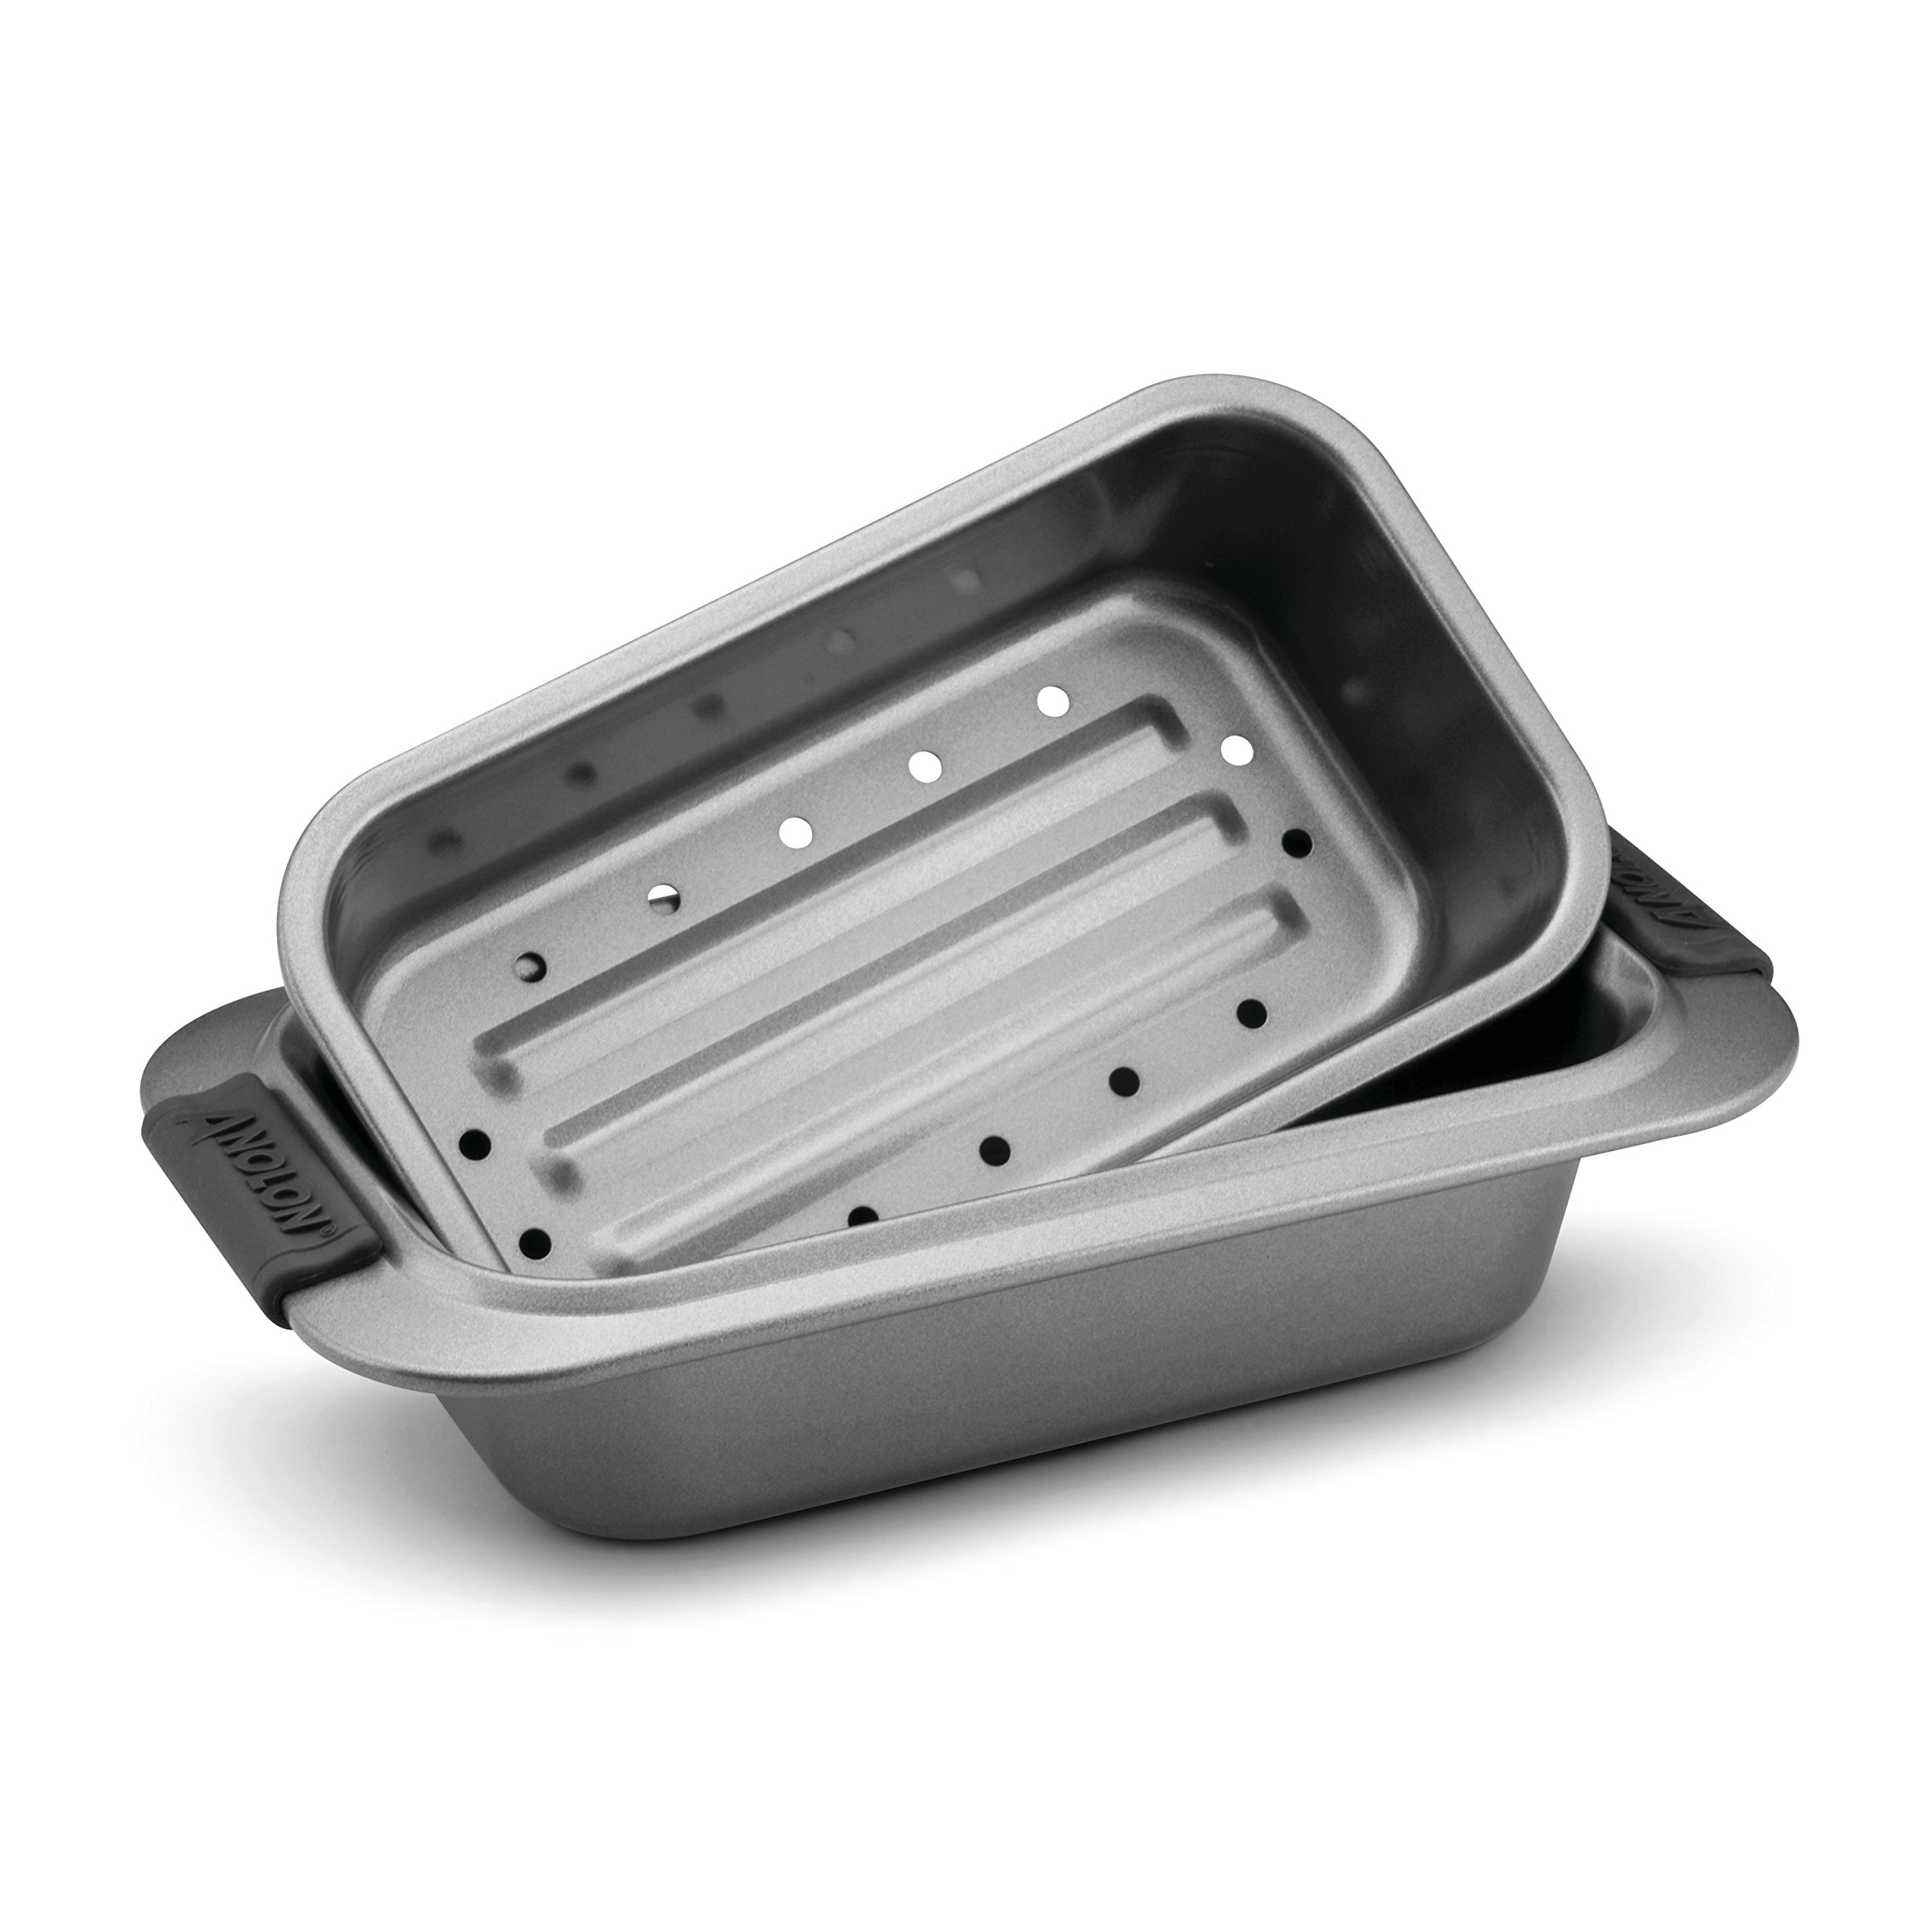 Anolon Advanced Nonstick Bakeware 2-Piece Loaf Pan Set, Gray with Silicone Grips